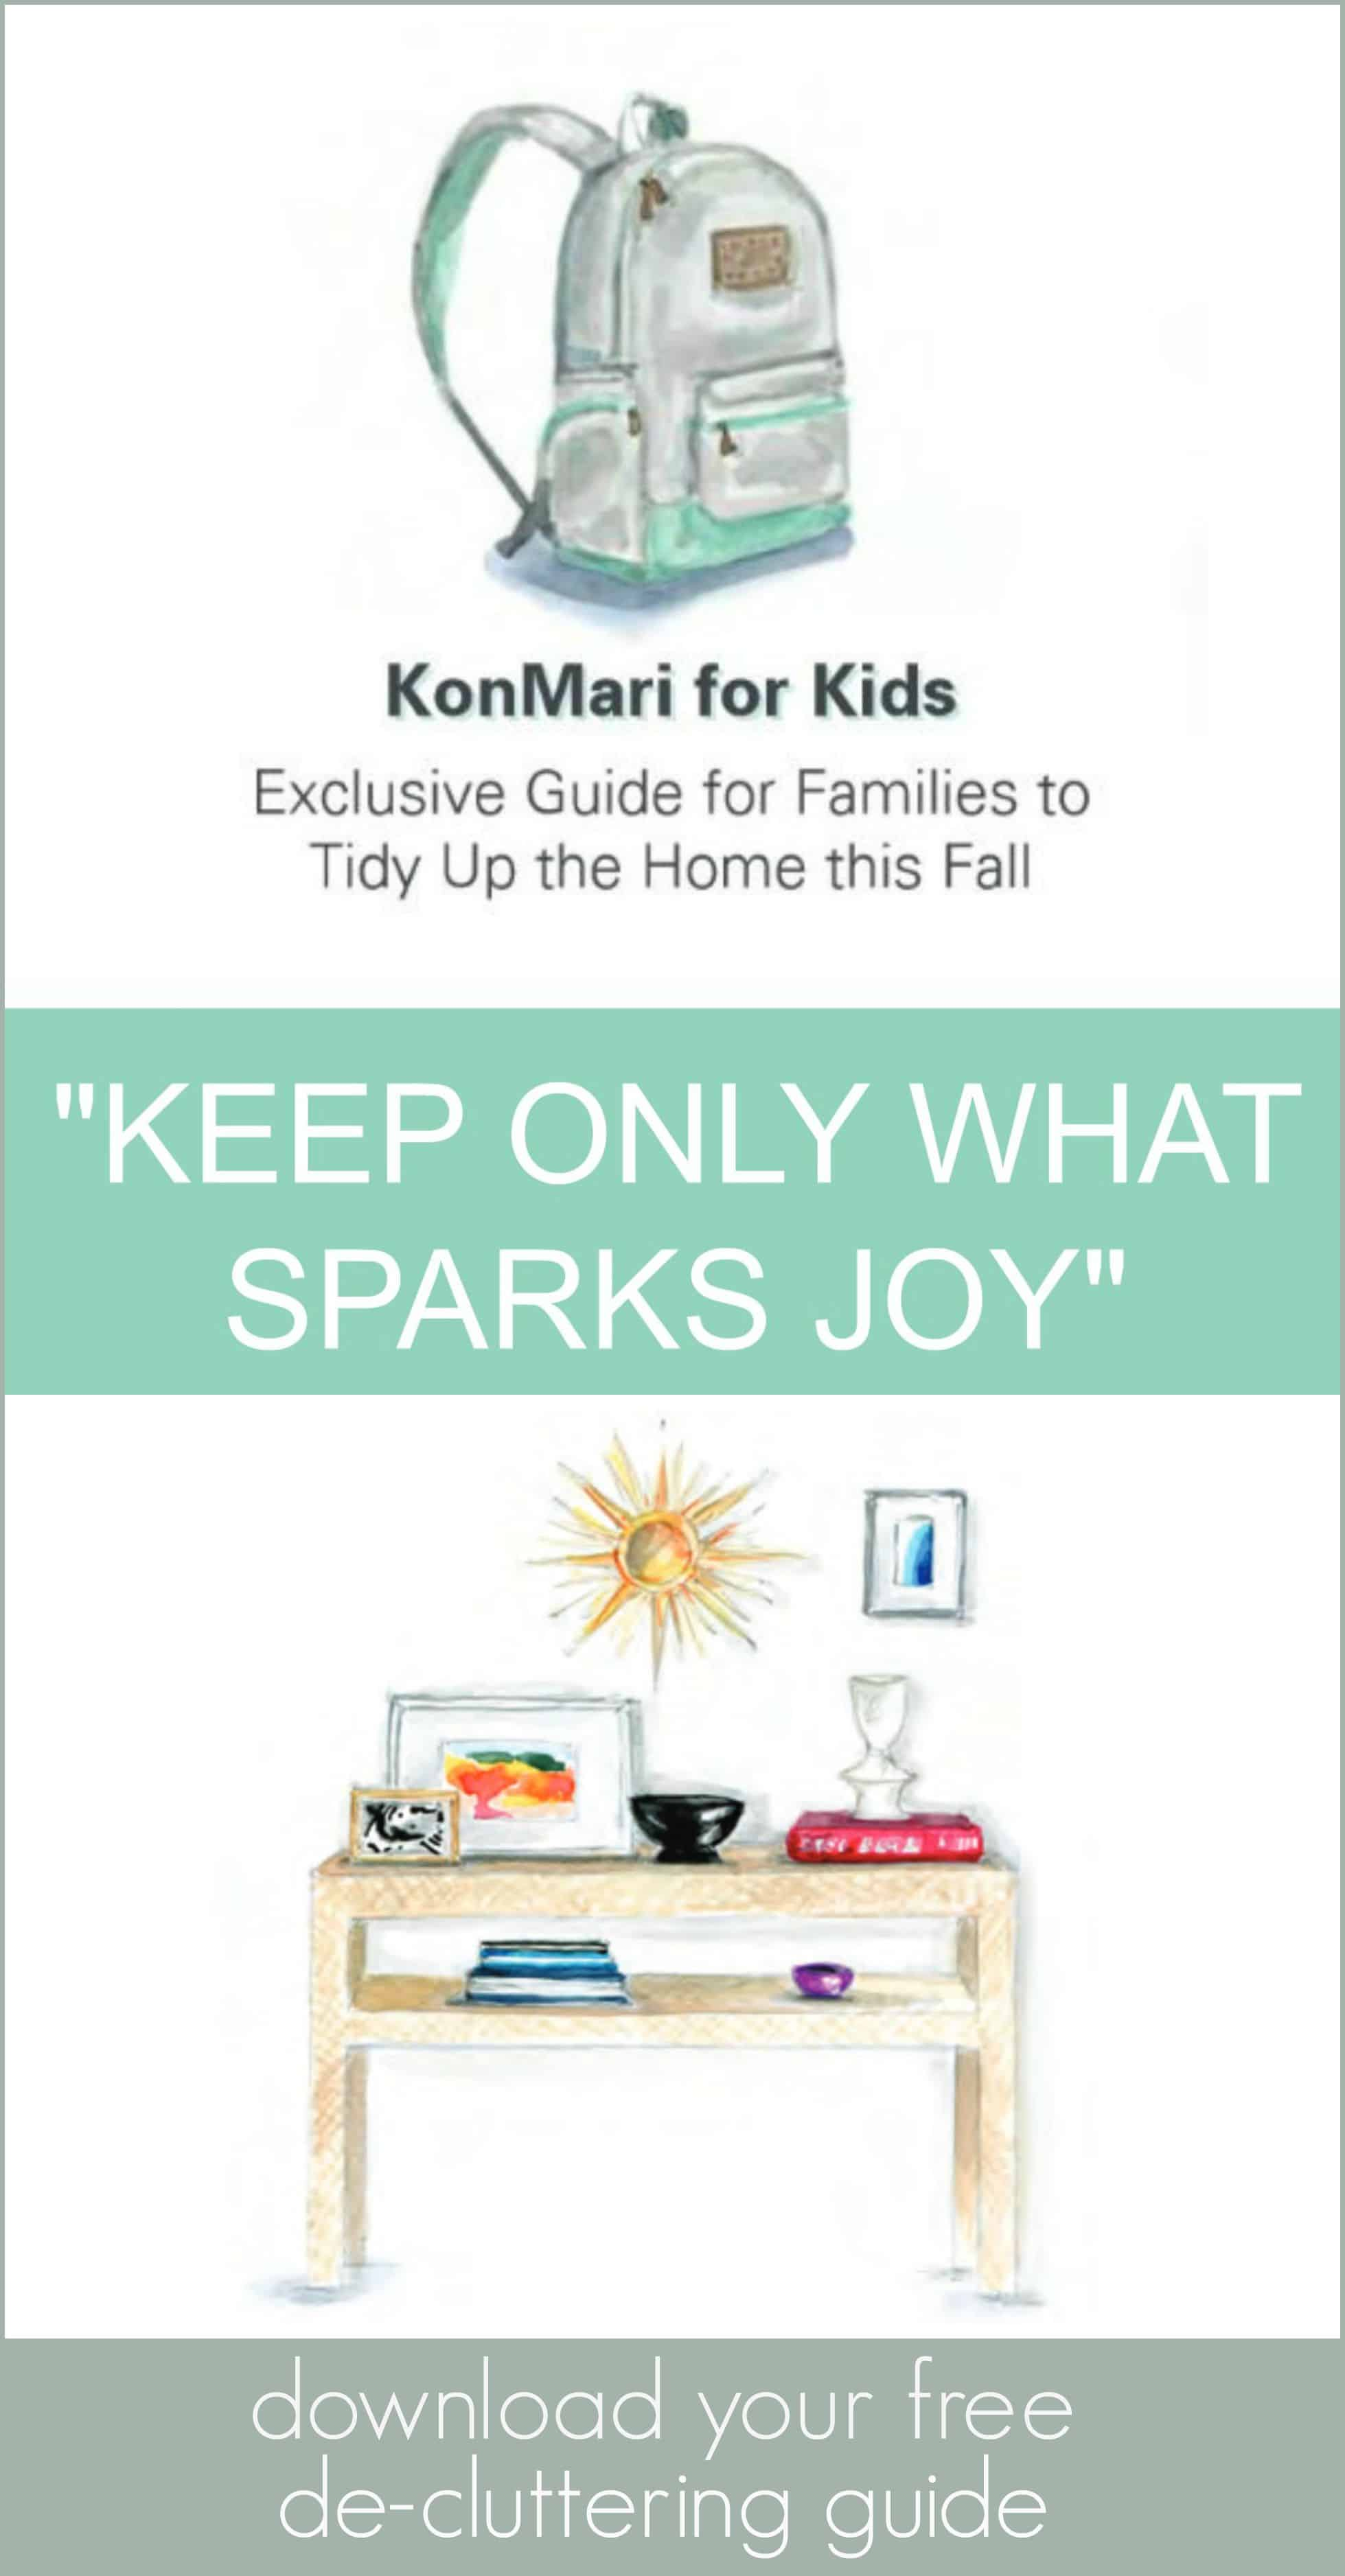 Download your free guide from KonMari for Kids Exclusive Guide for Families to Tidy Up The Home This Fall.